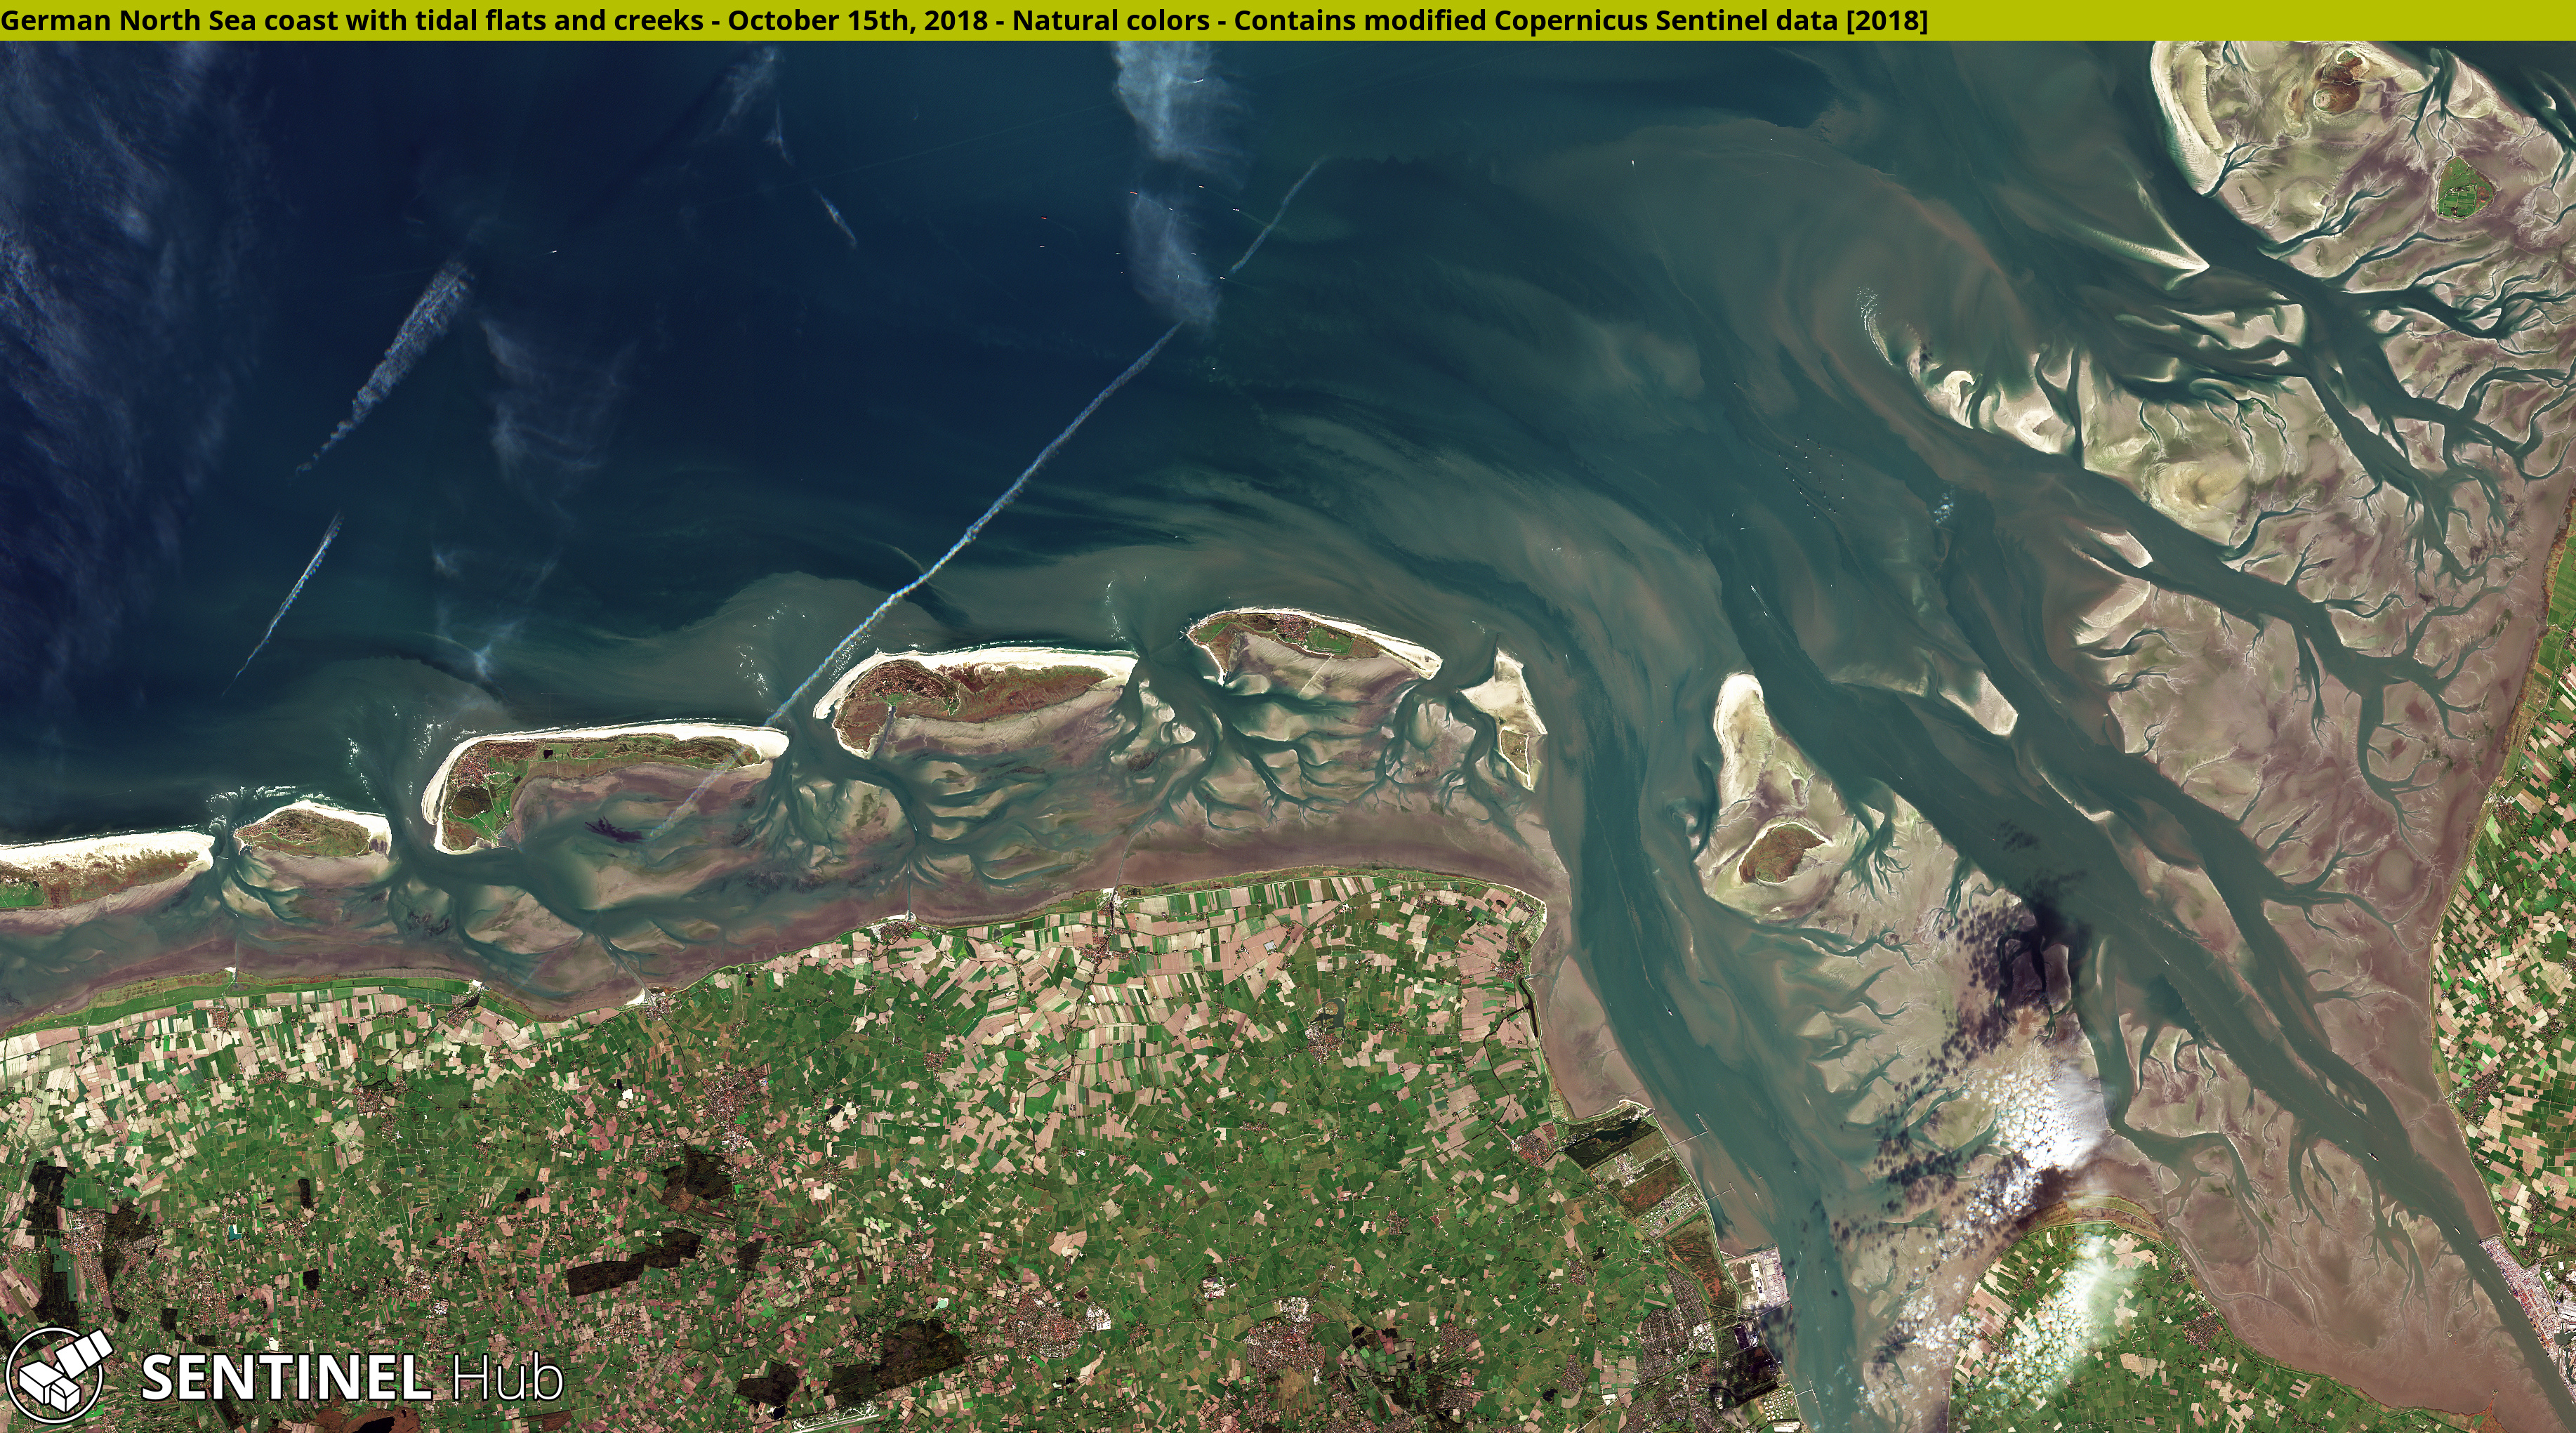 German North Sea coast. Contains modified Copernicus Sentinel data [2018], processed by Sentinel Hub